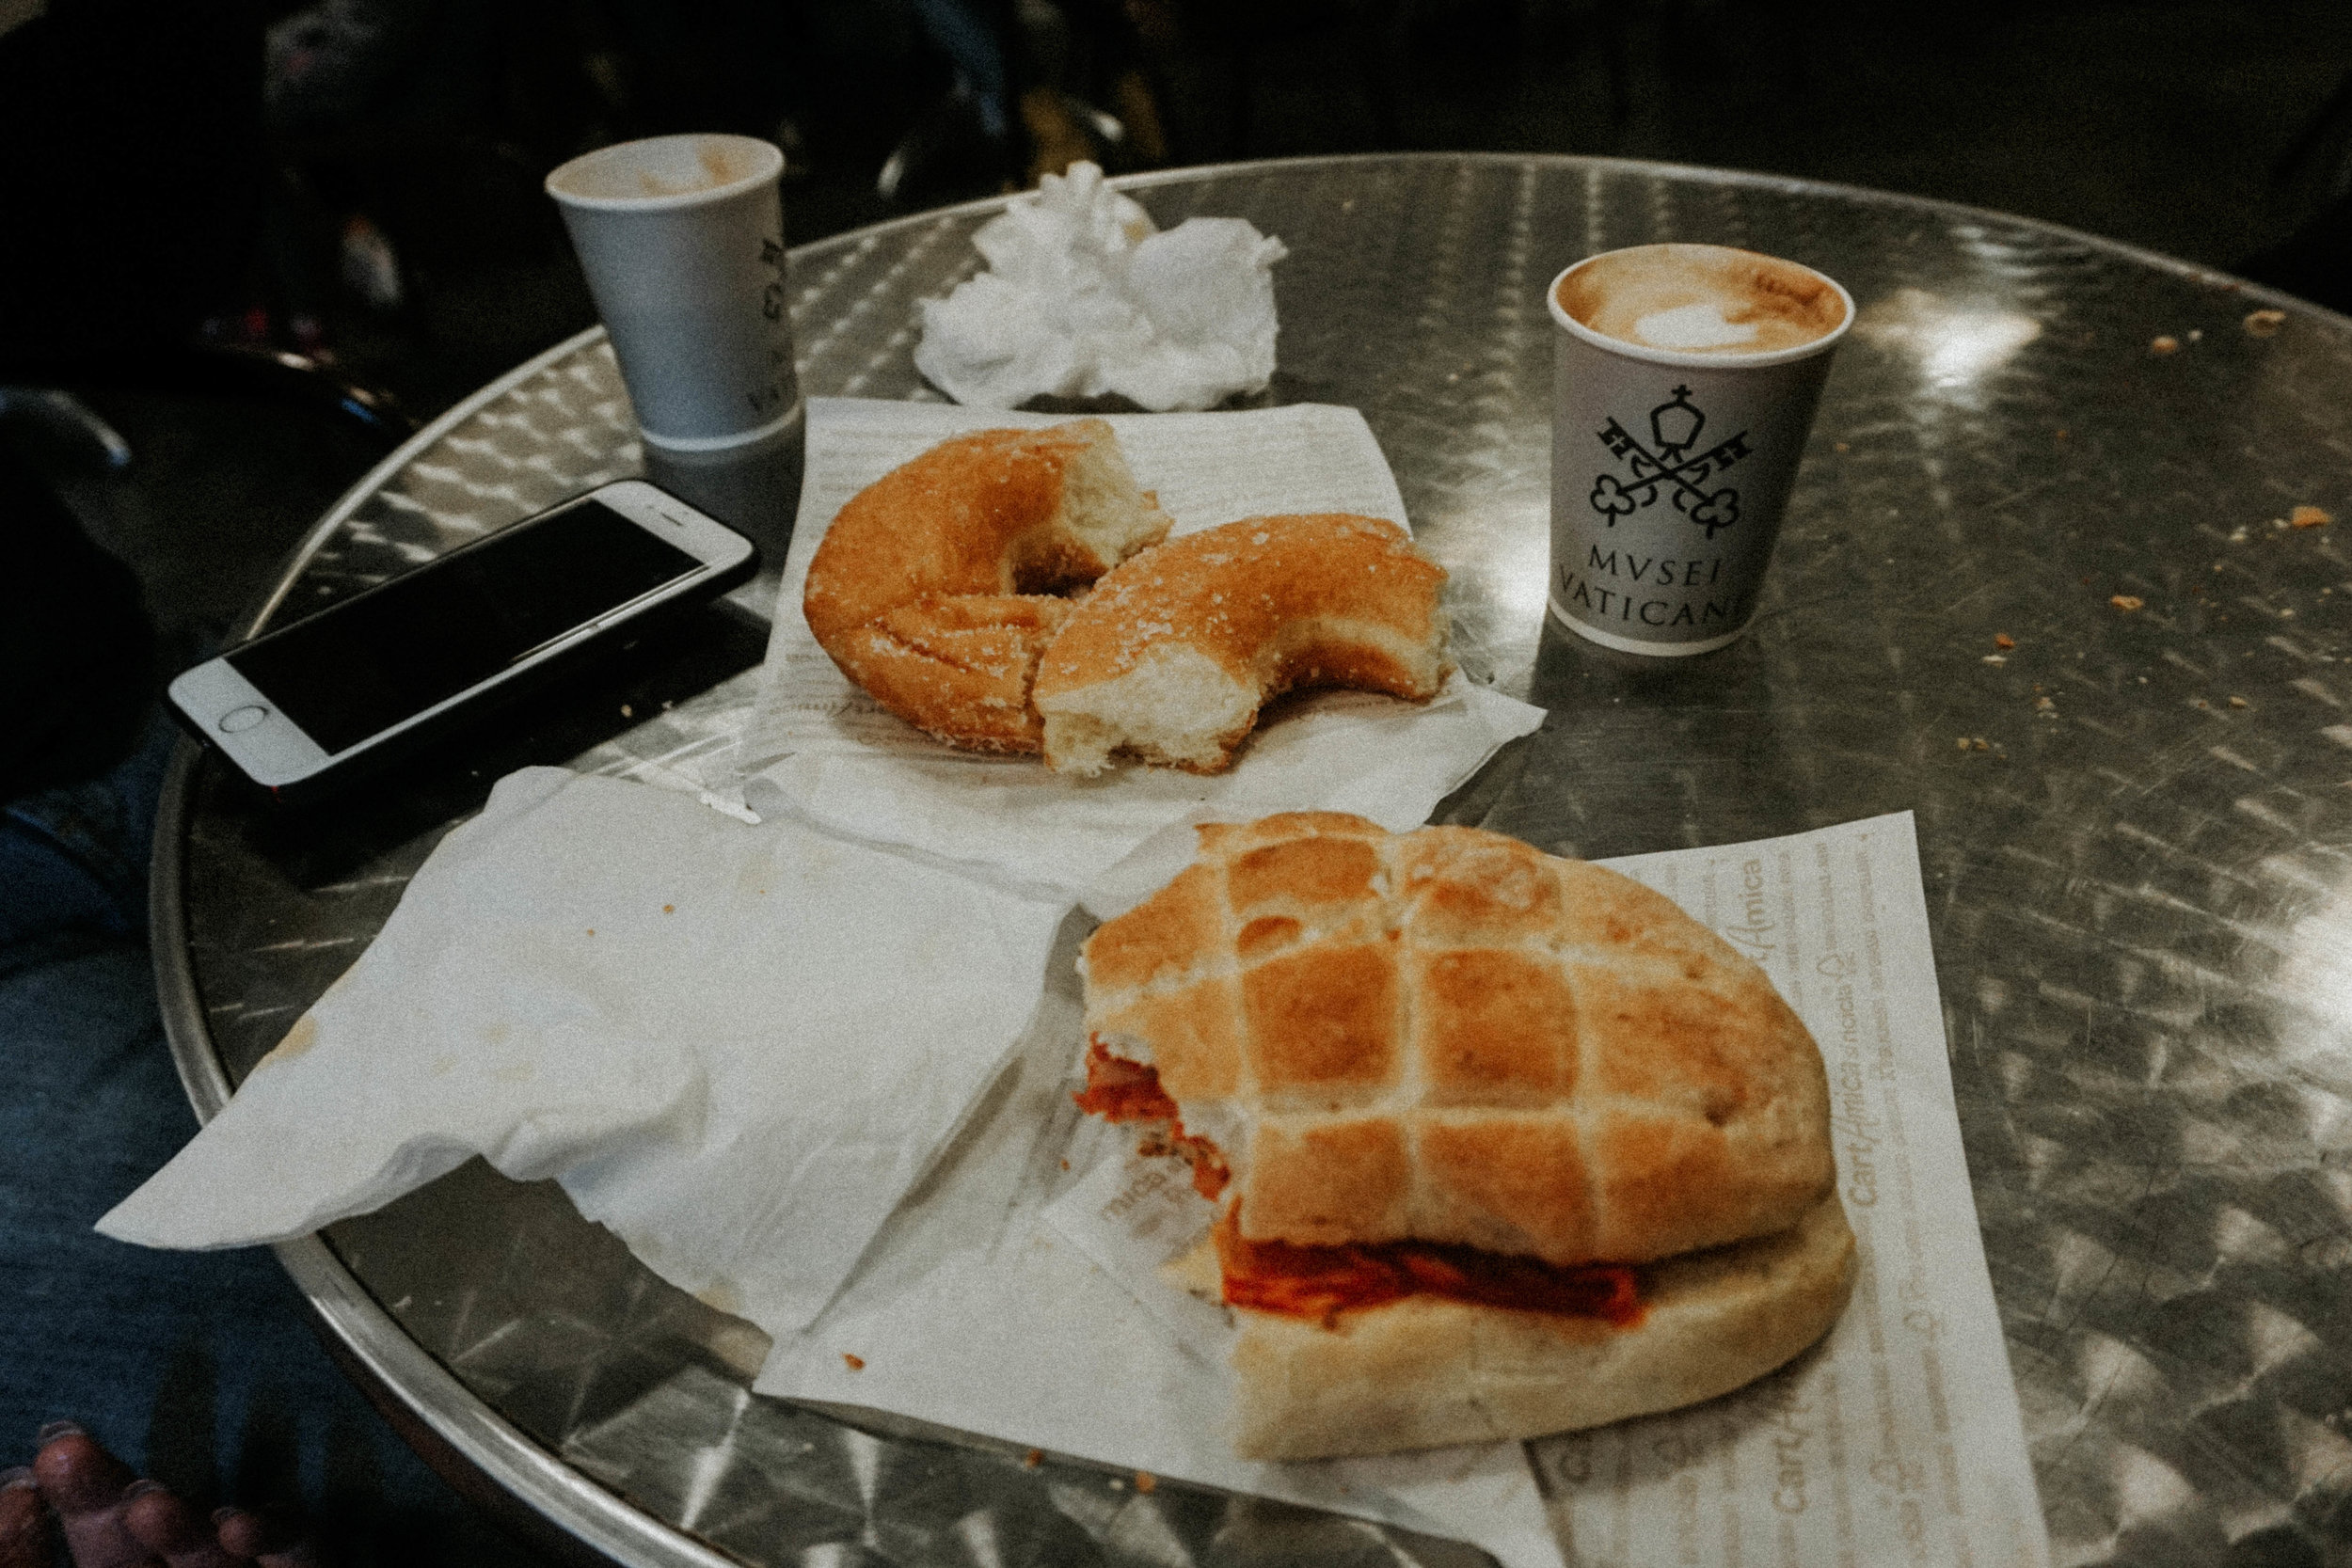 Papal cow milk cappuccini and some decent sandwiches. Welcome respite after a thorough soaking on the rainy tour.